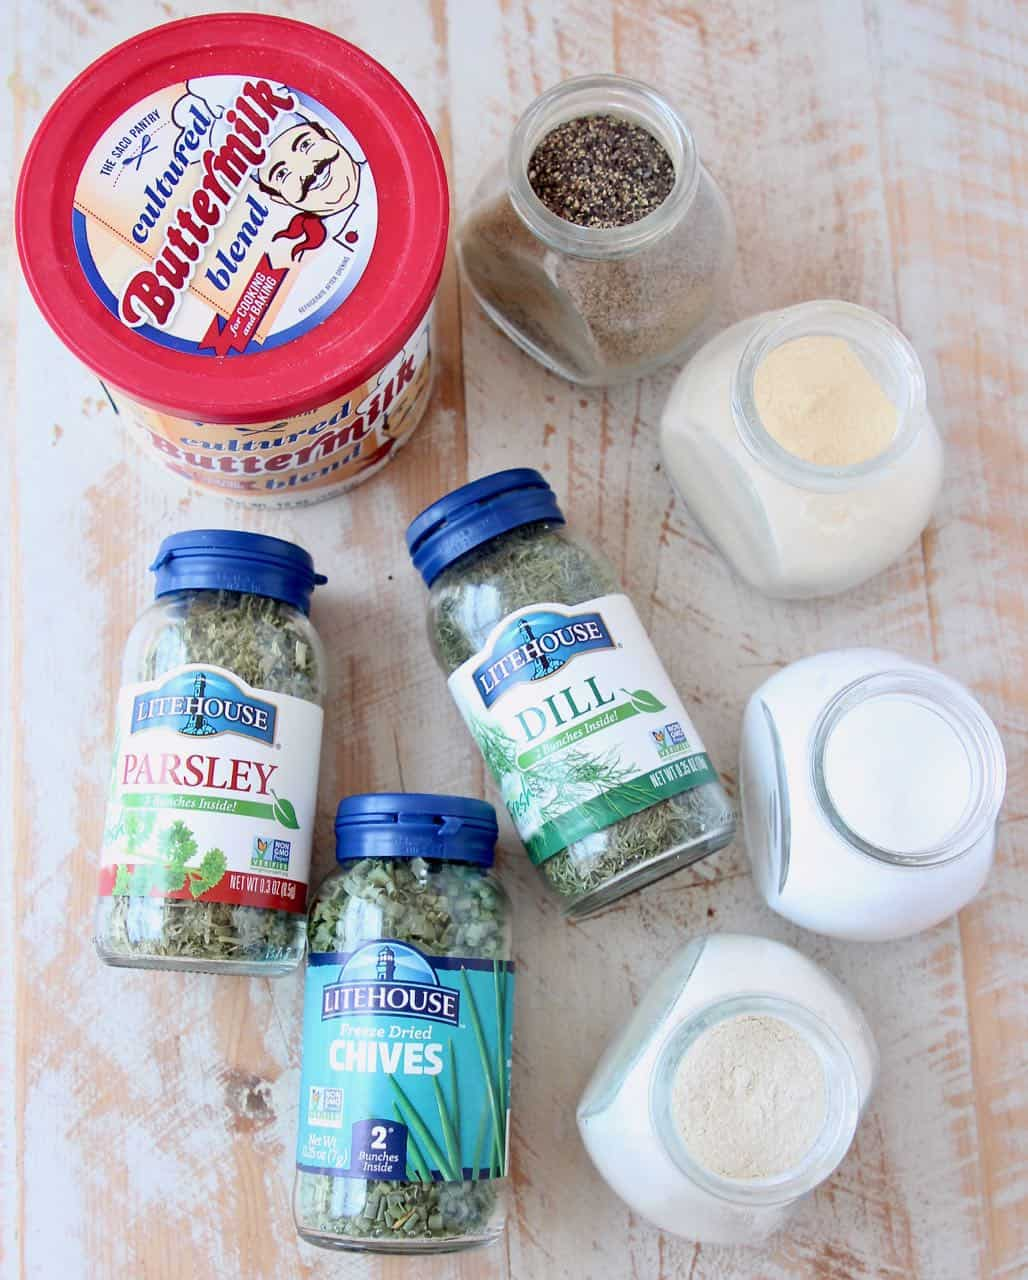 Ingredients for ranch seasoning mix